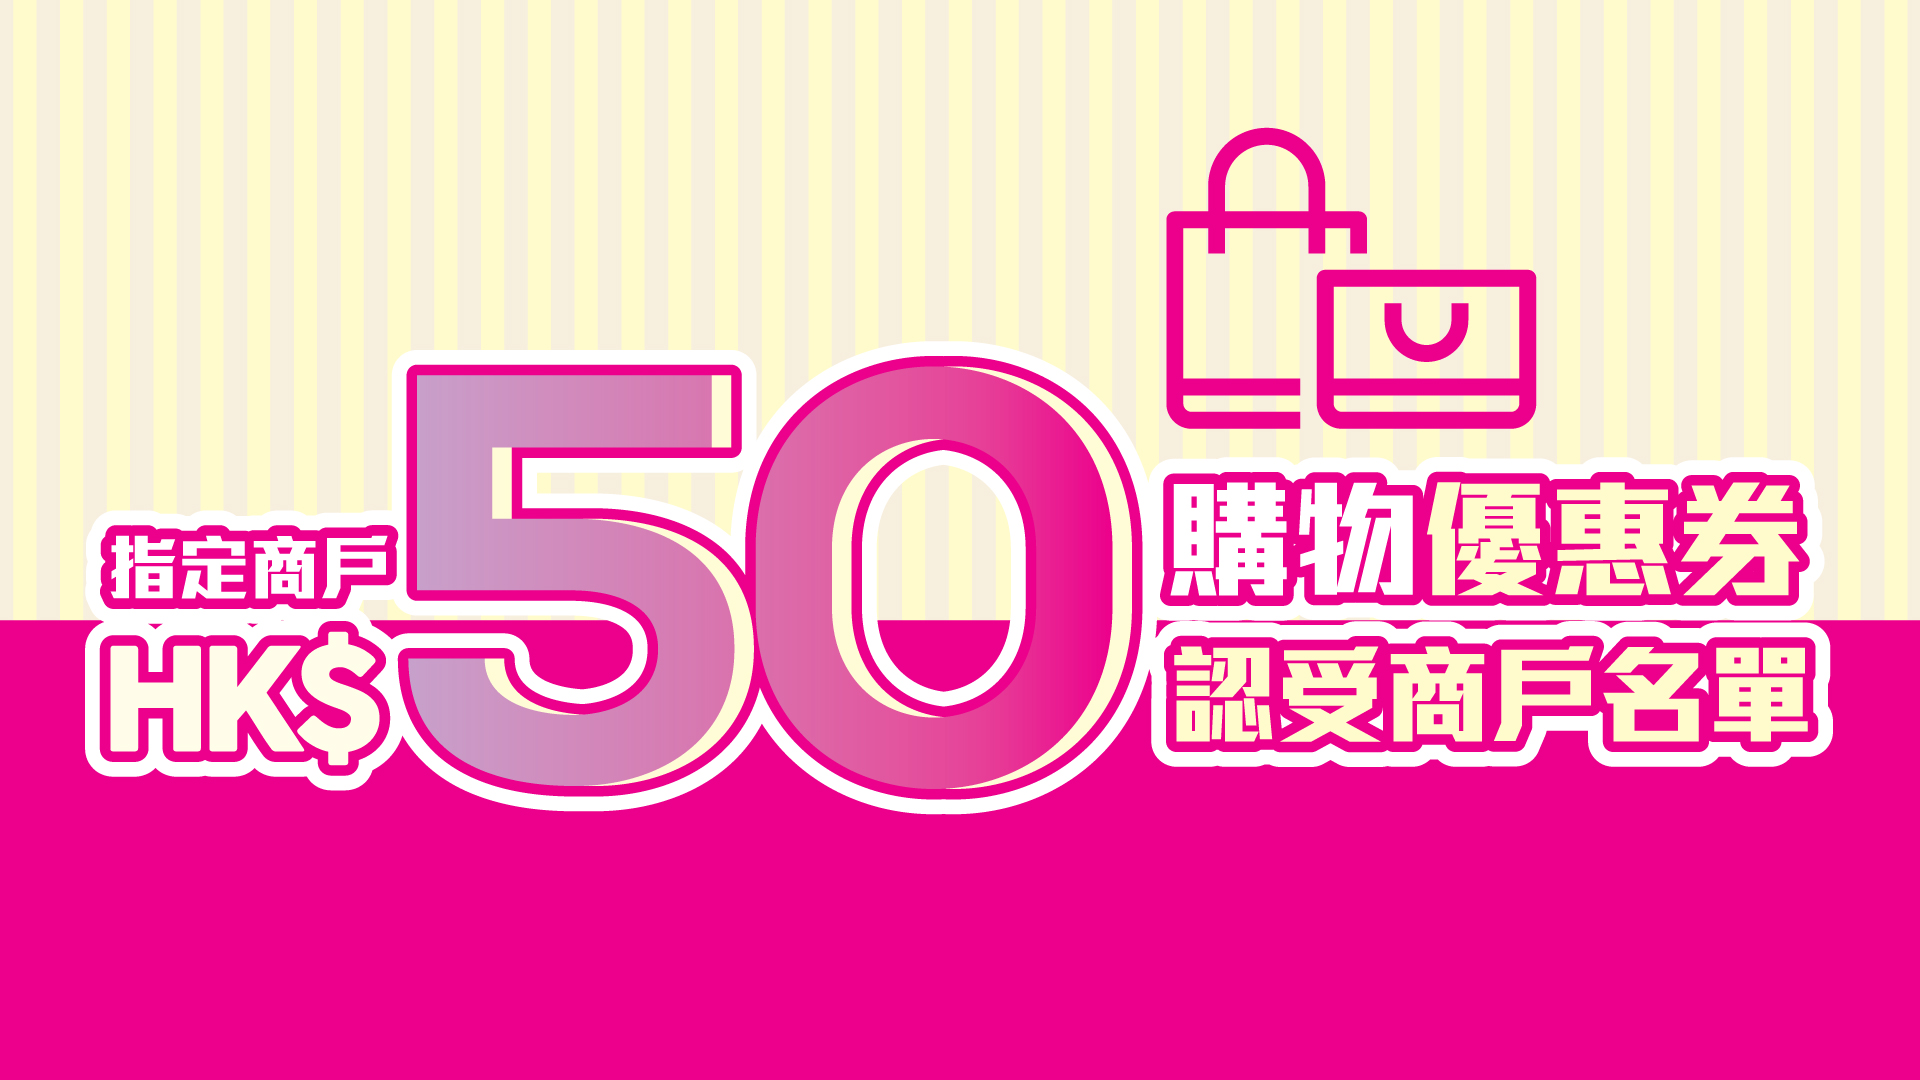 Plaza Hollywood HK$50 Shopping Coupon - Participating Tenant List